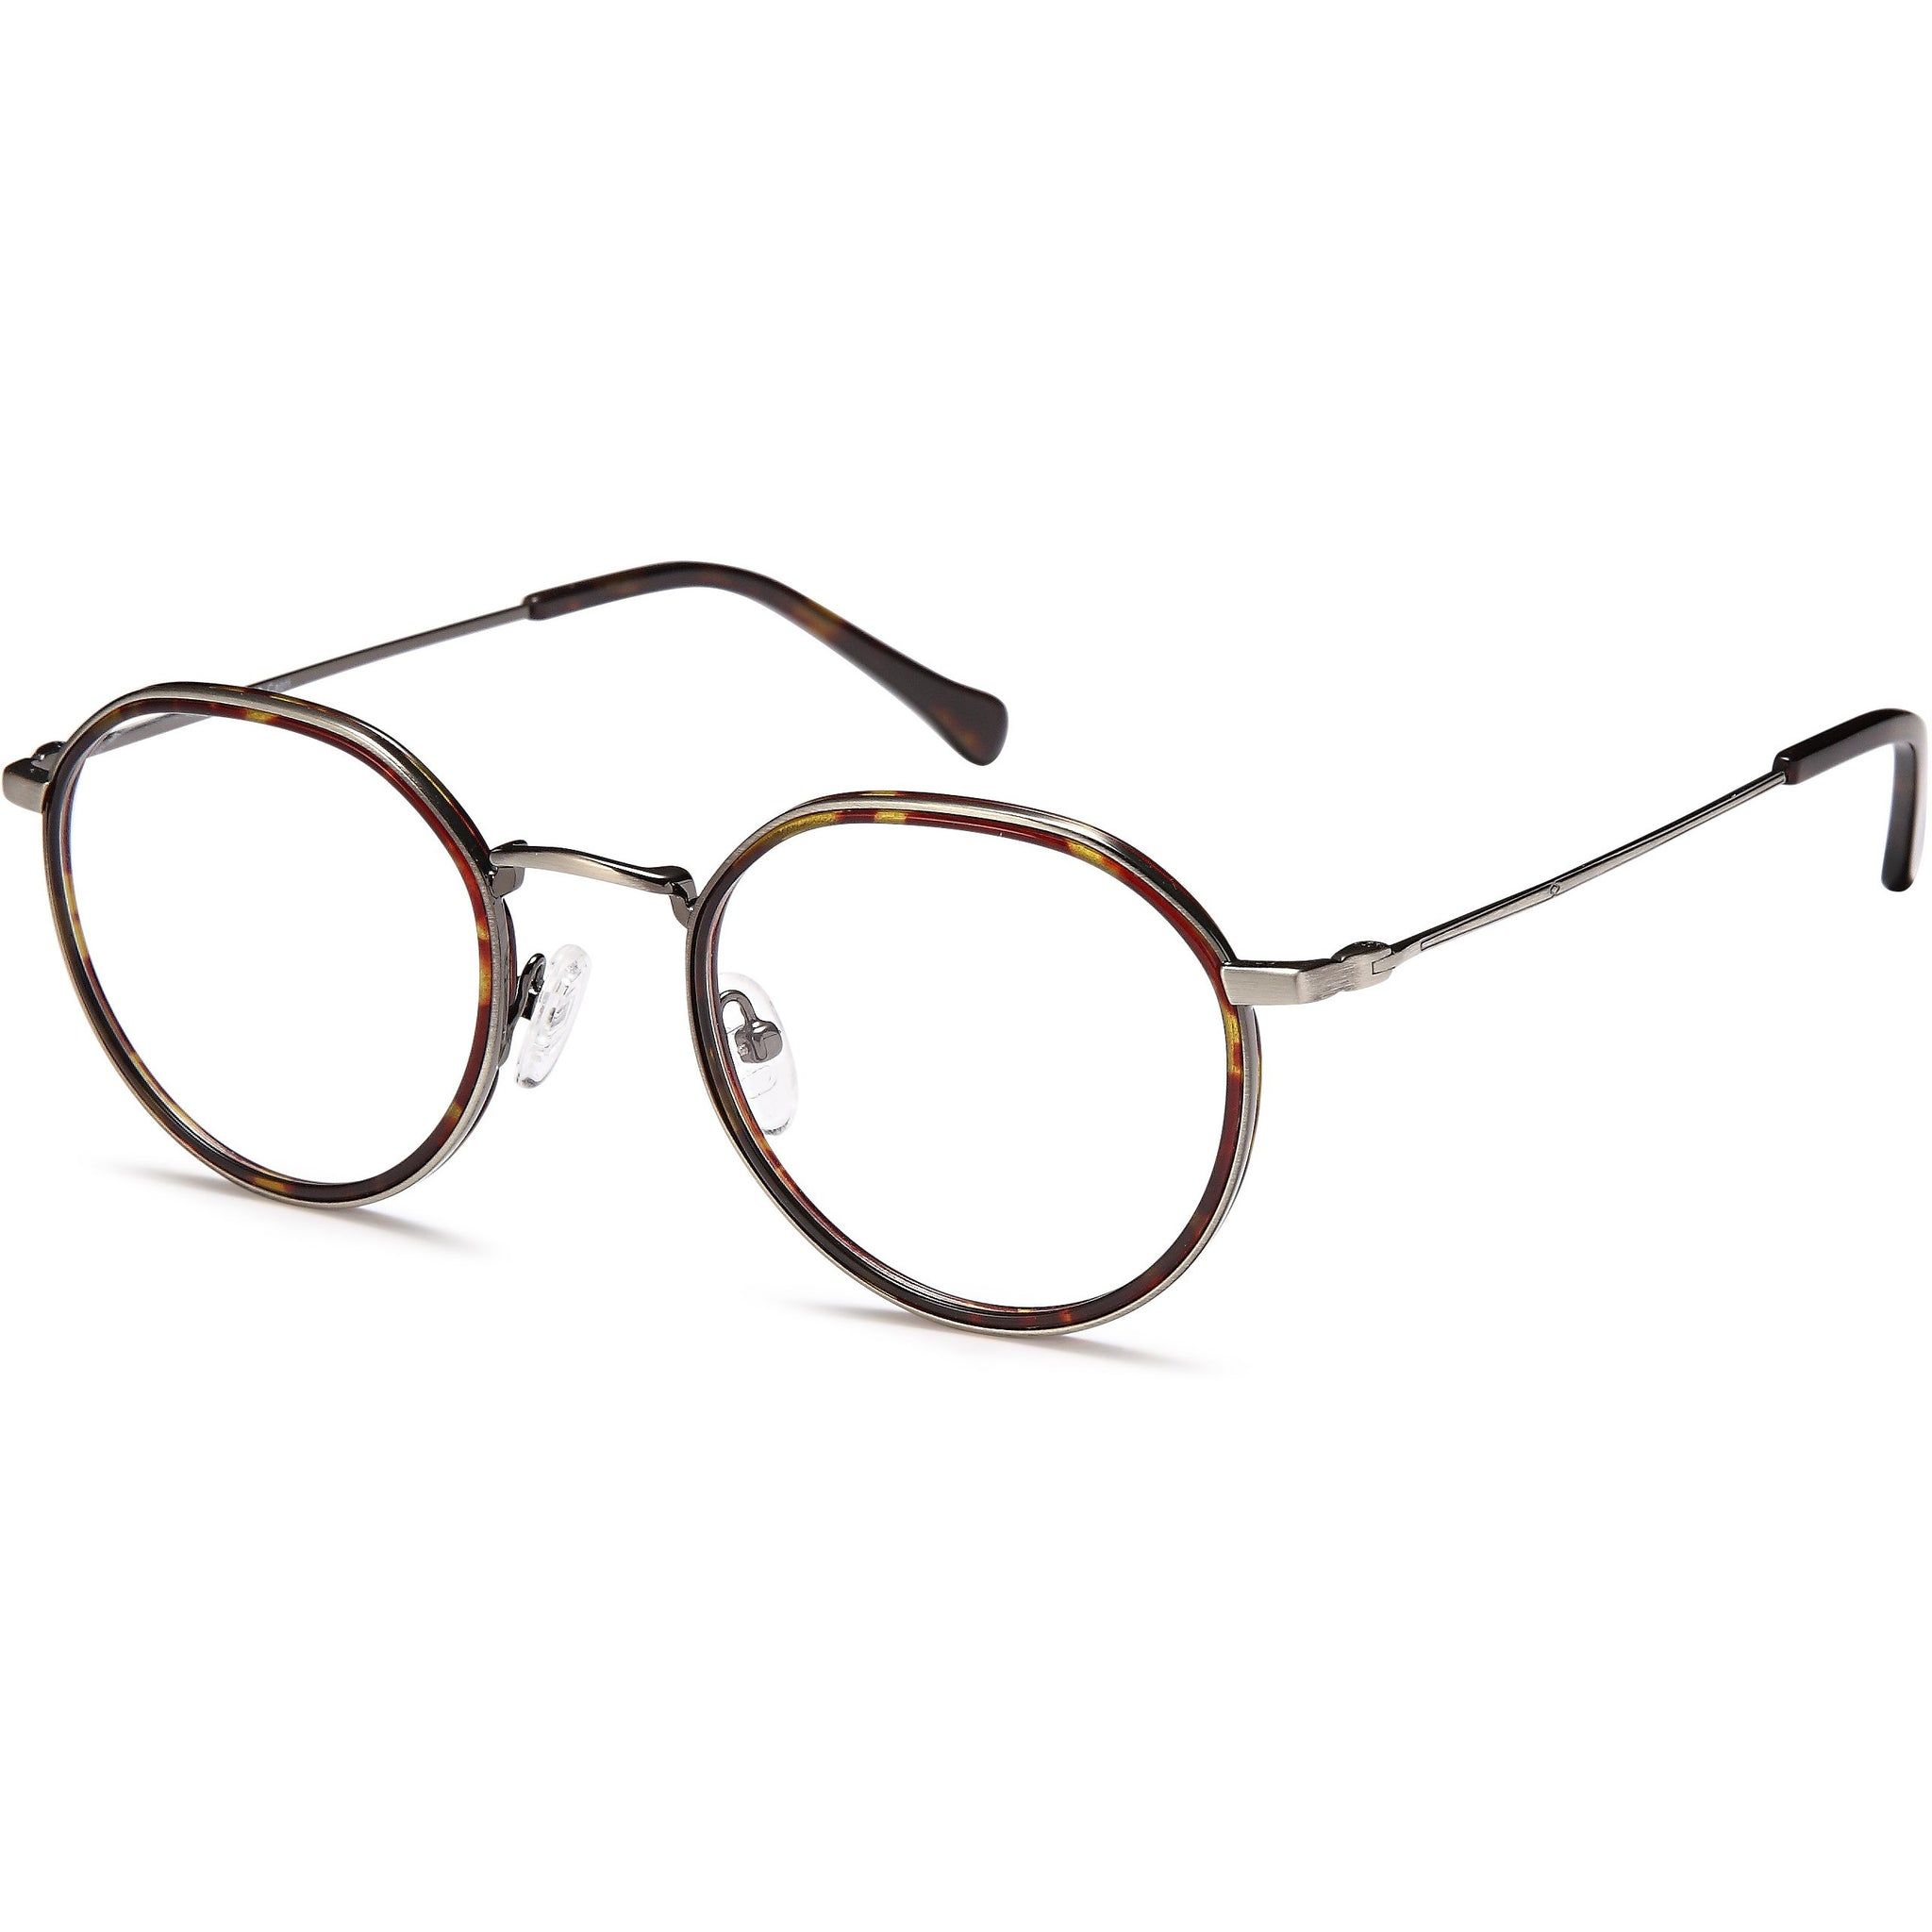 Leonardo Prescription Glasses DC 333 Eyeglasses Frame